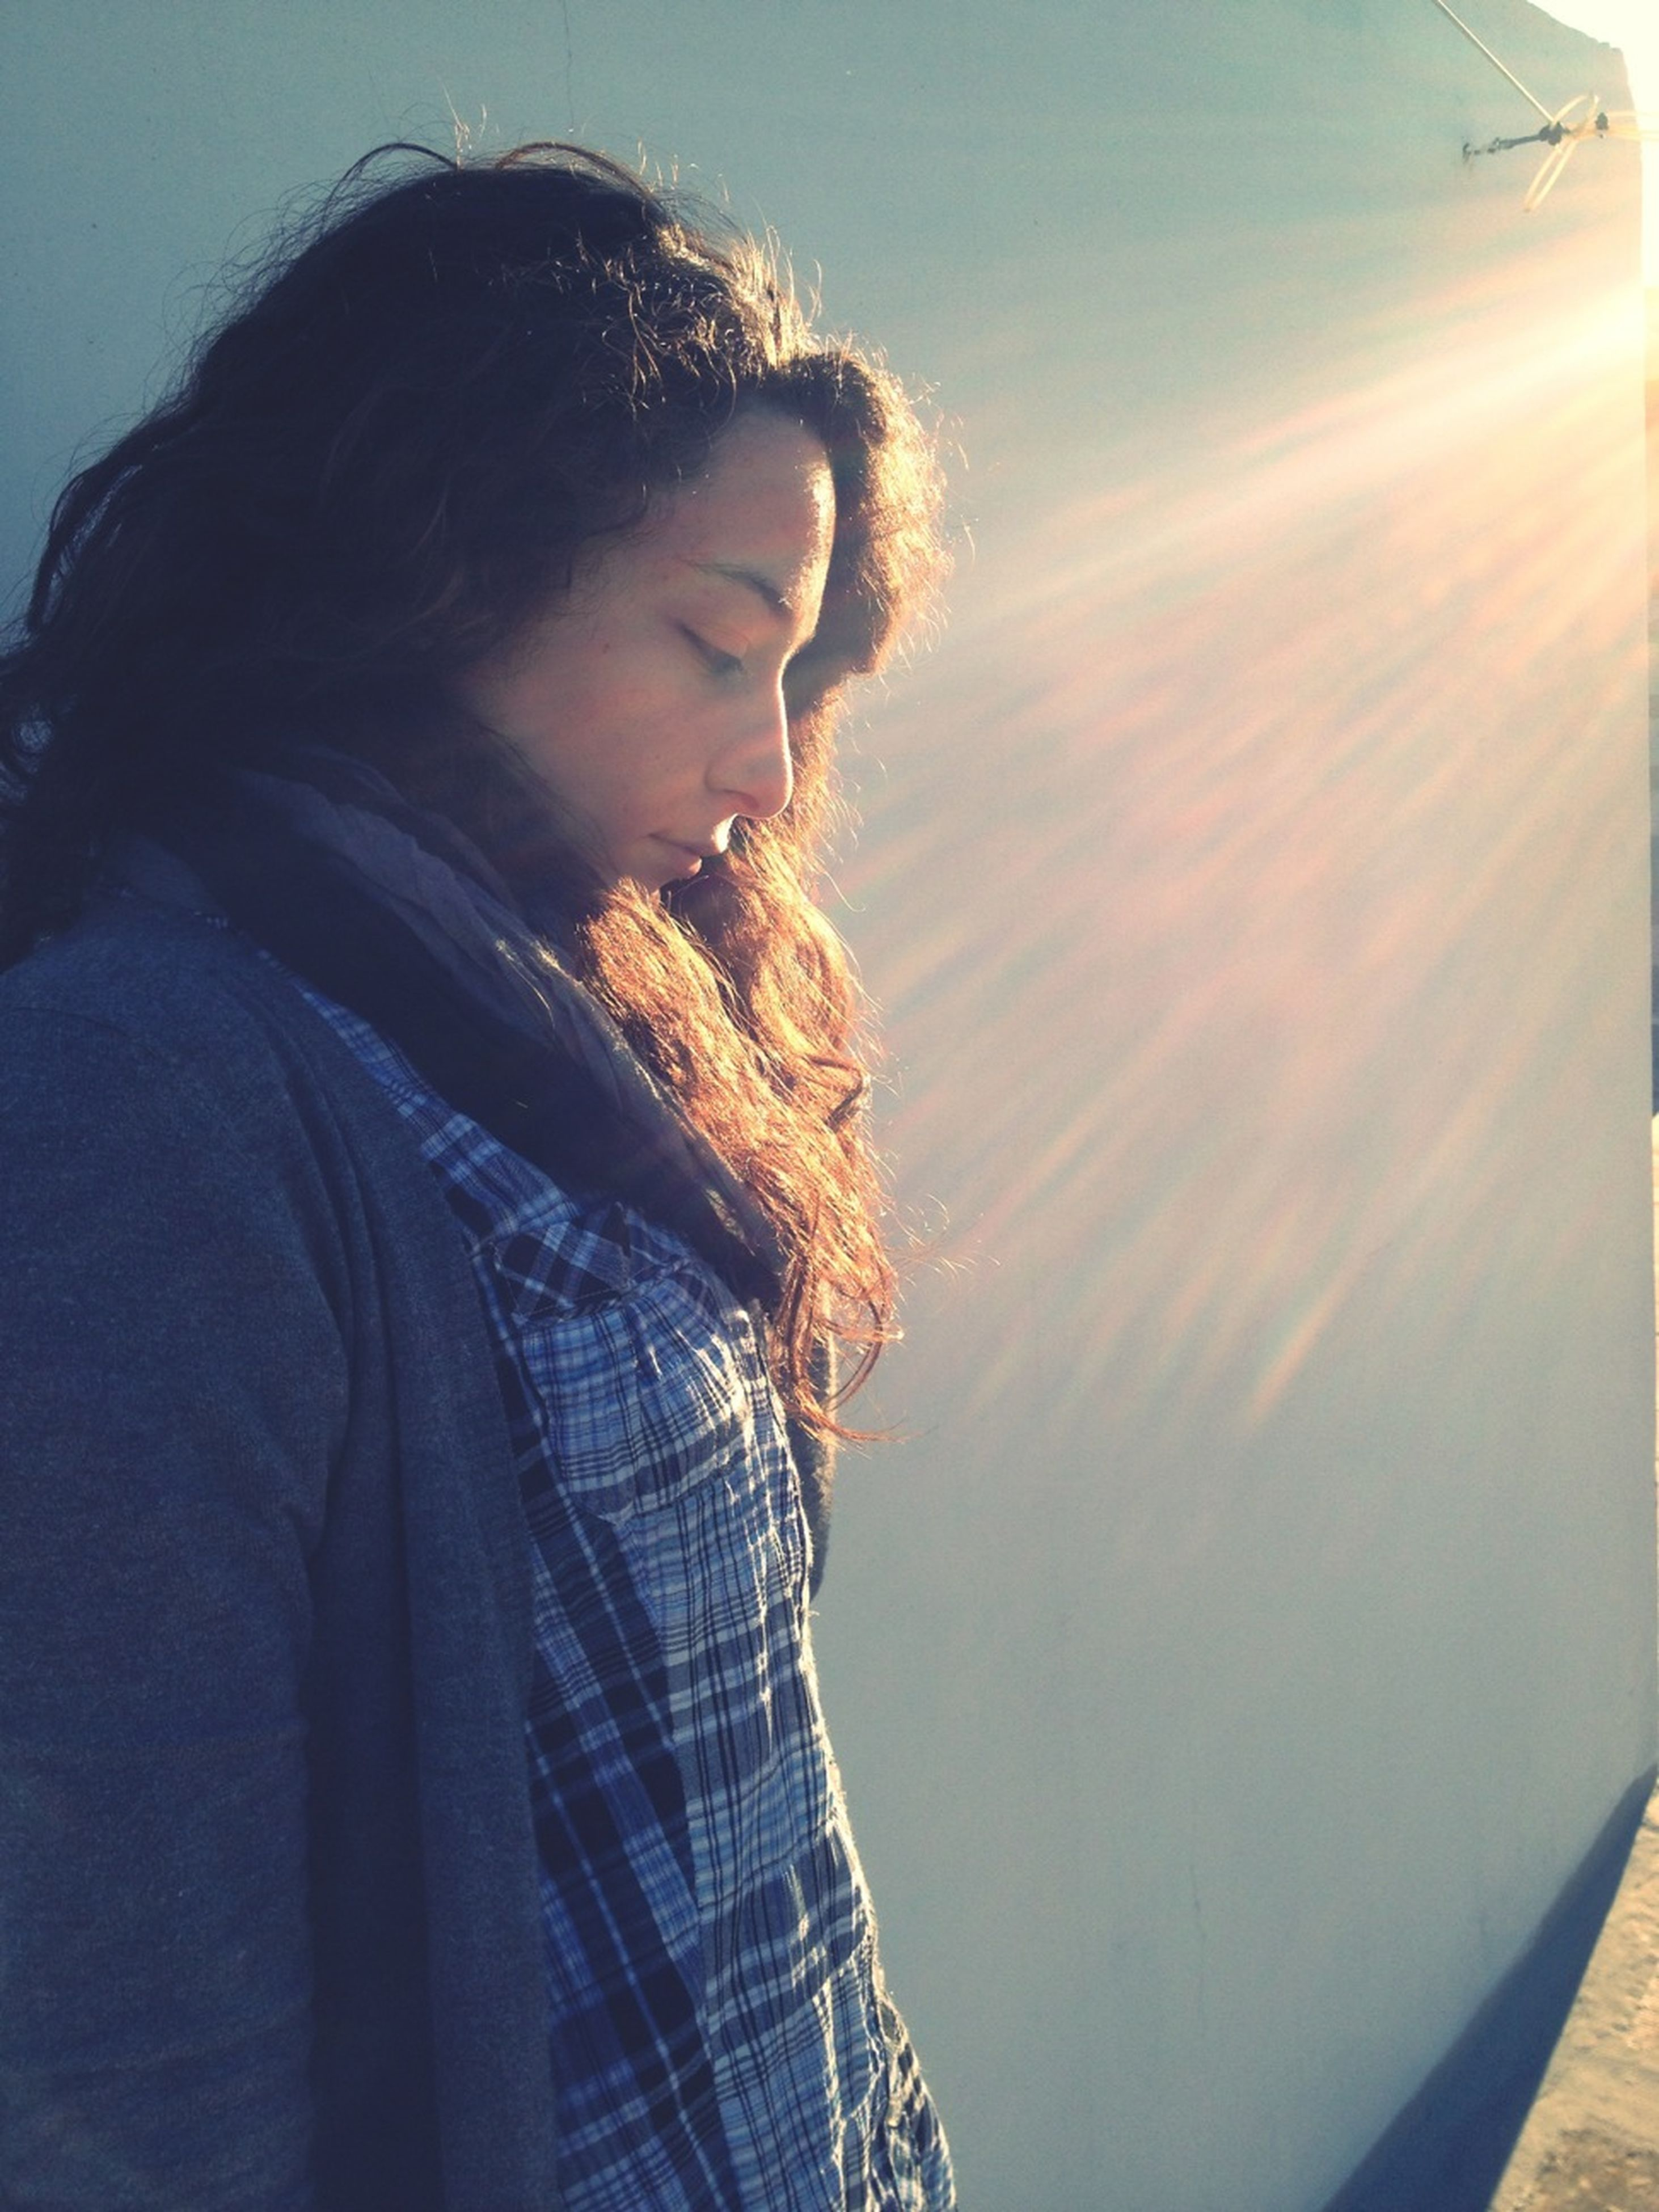 lifestyles, young adult, leisure activity, casual clothing, person, young women, sun, sunlight, sunbeam, long hair, headshot, three quarter length, standing, waist up, contemplation, side view, looking away, lens flare